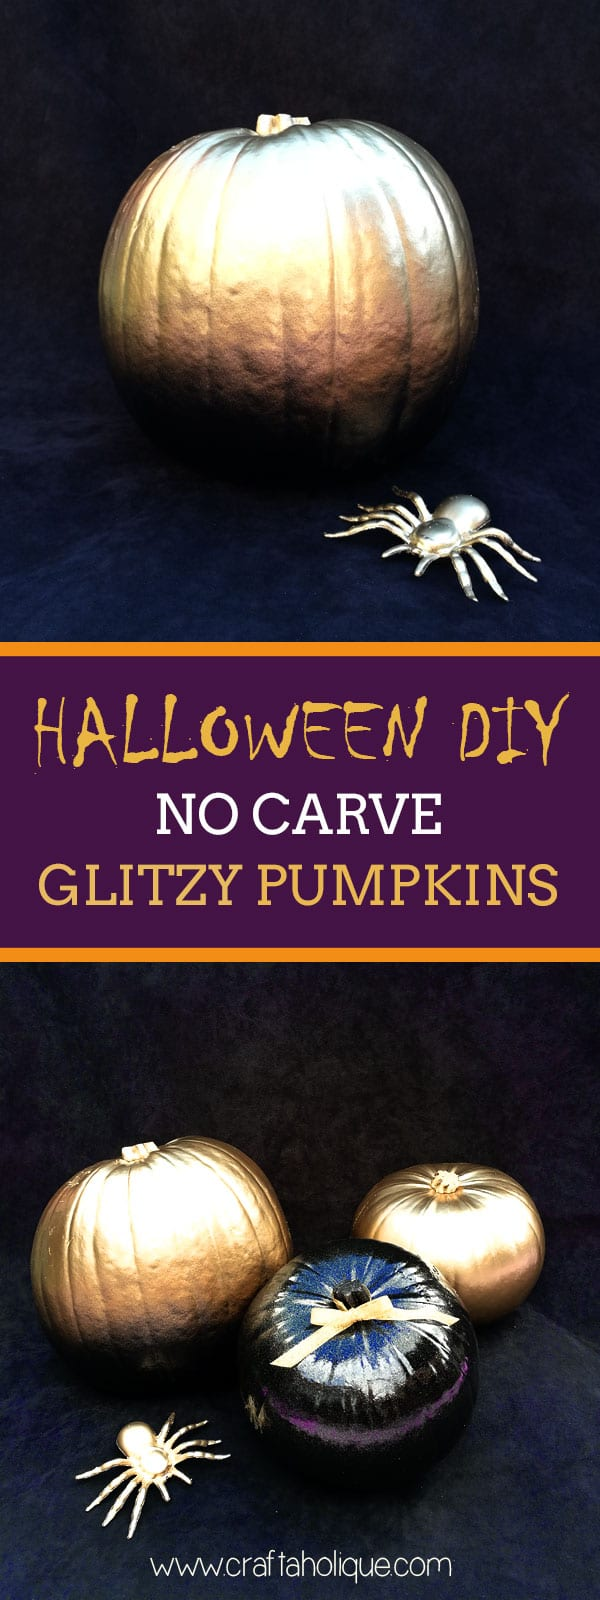 Halloween DIY - no carve pumpkin ideas from Craftaholique